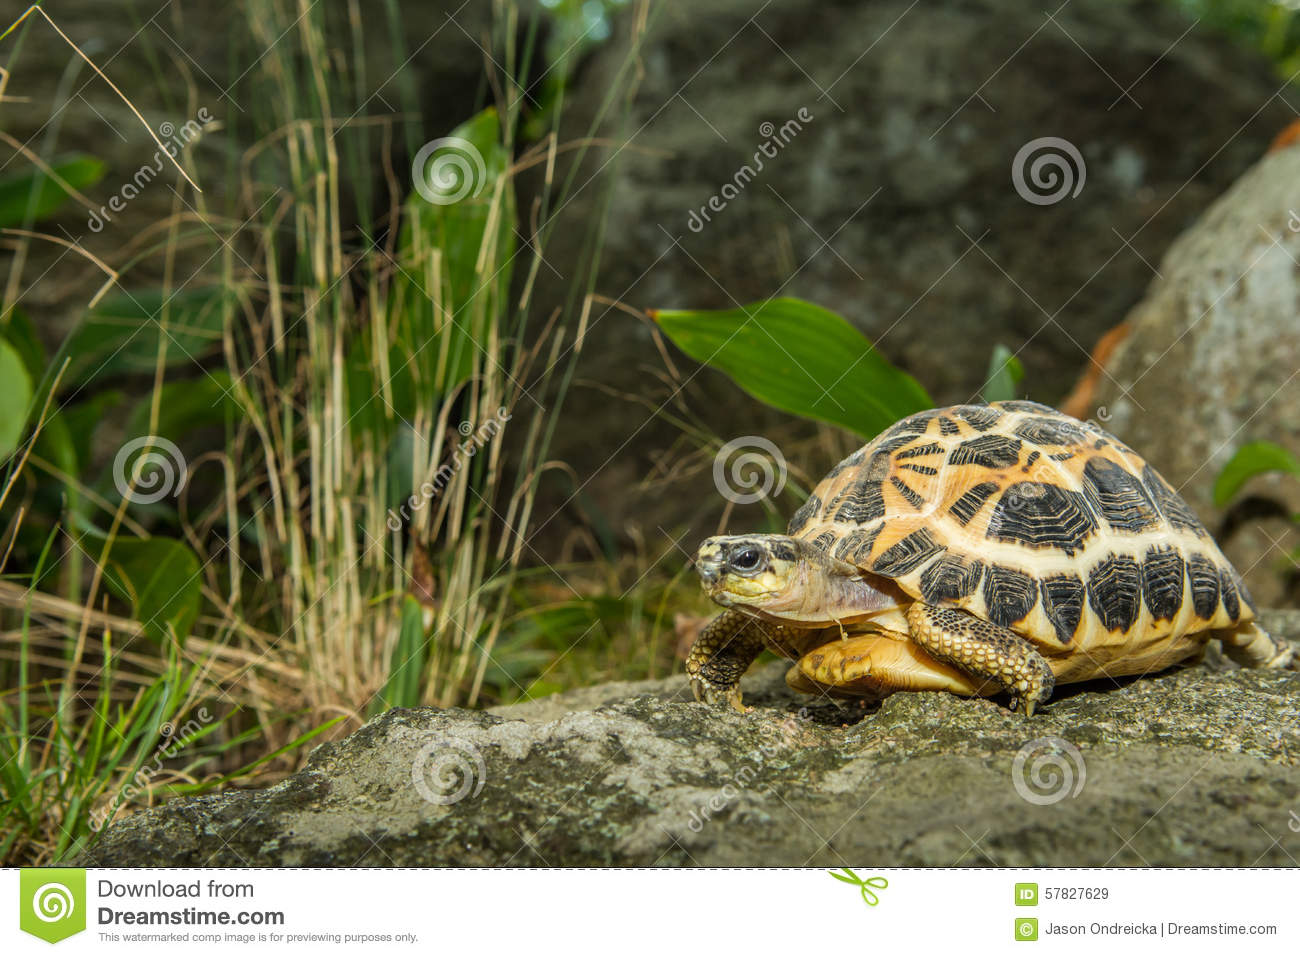 Spider Tortoise clipart #9, Download drawings